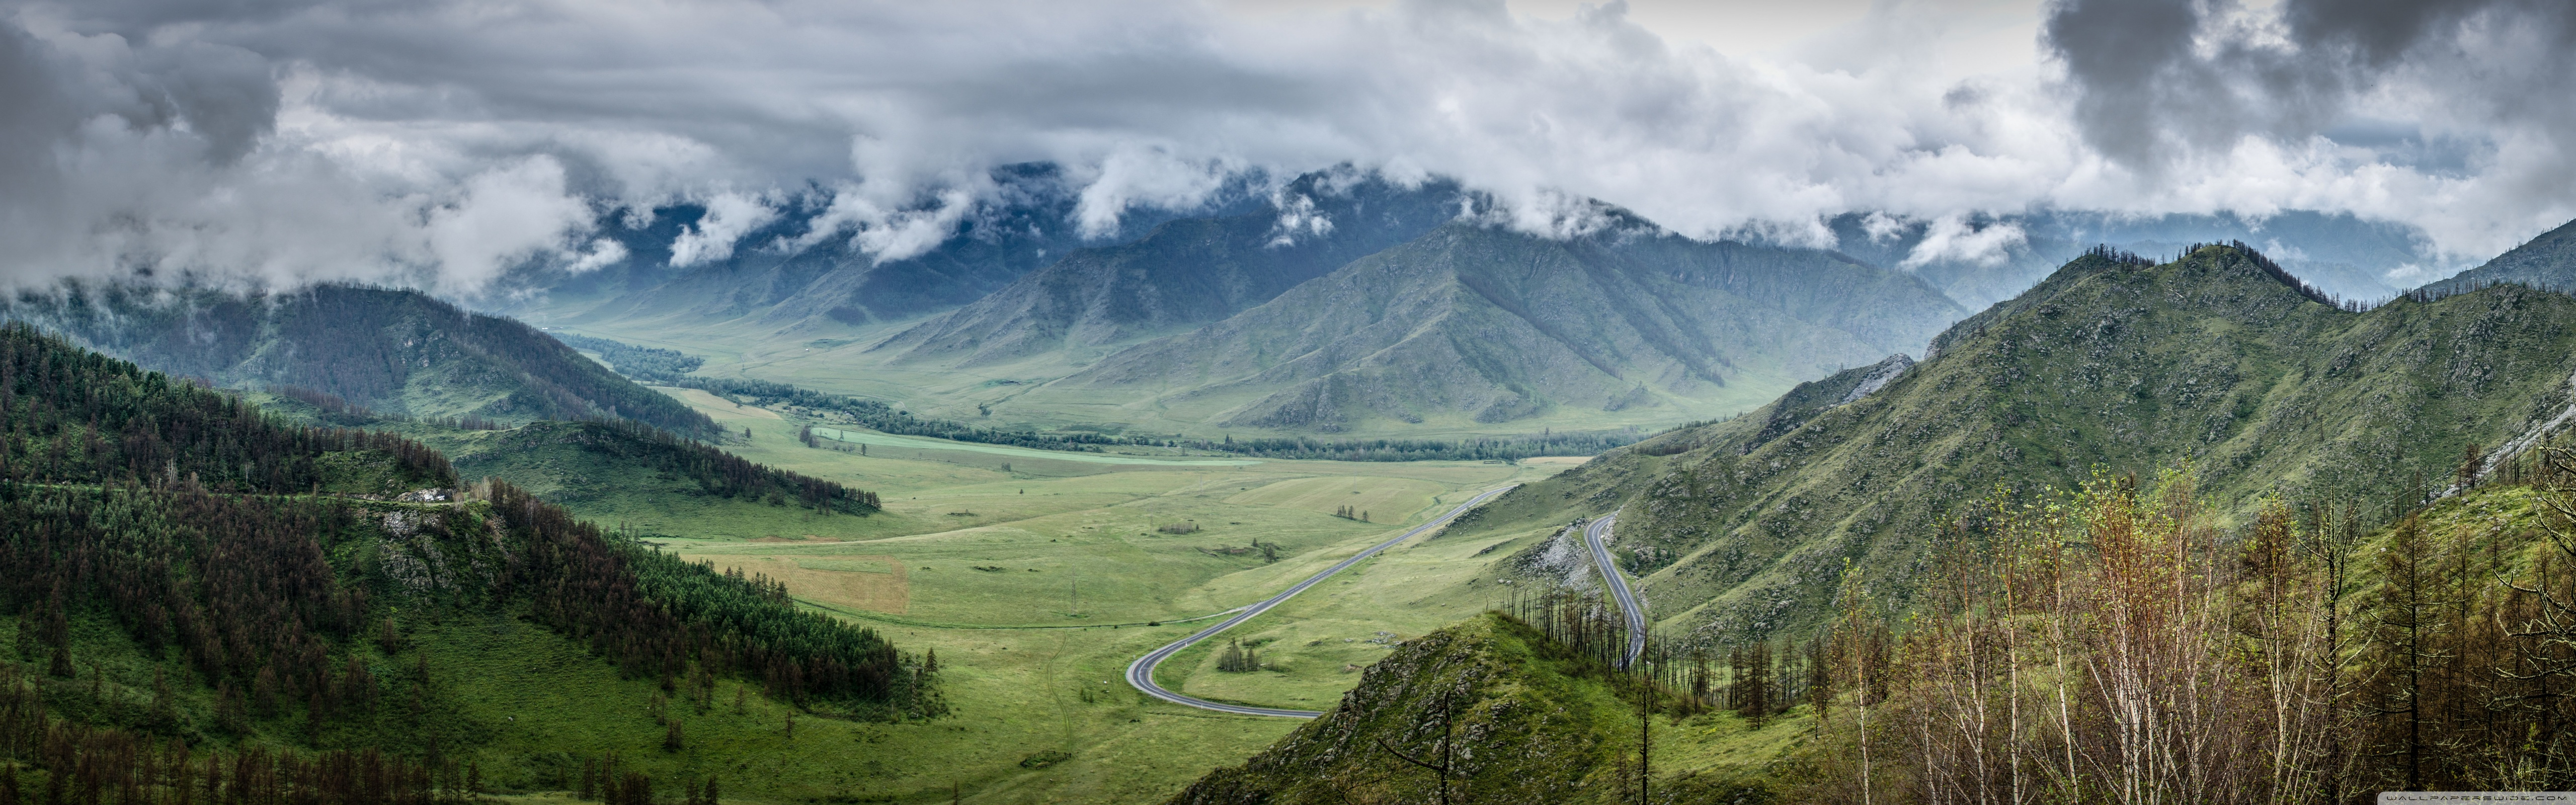 Altai Mountains Russia 4K HD Desktop Wallpaper for 4K Ultra HD 5120x1600